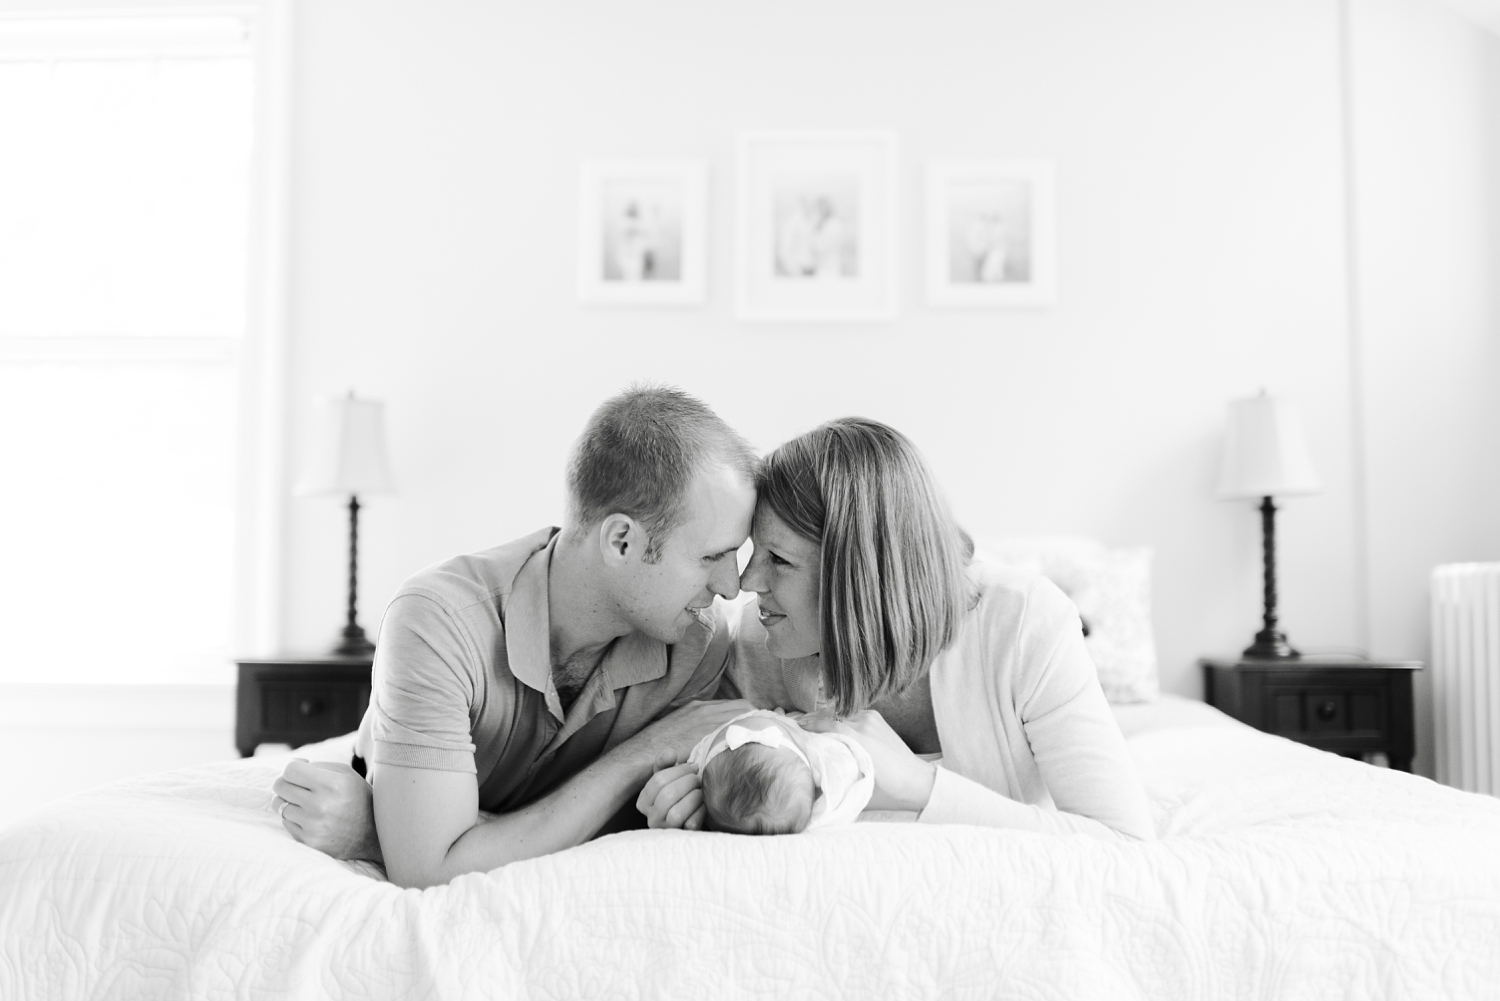 richmond_family_newborn photographer_0043.jpg